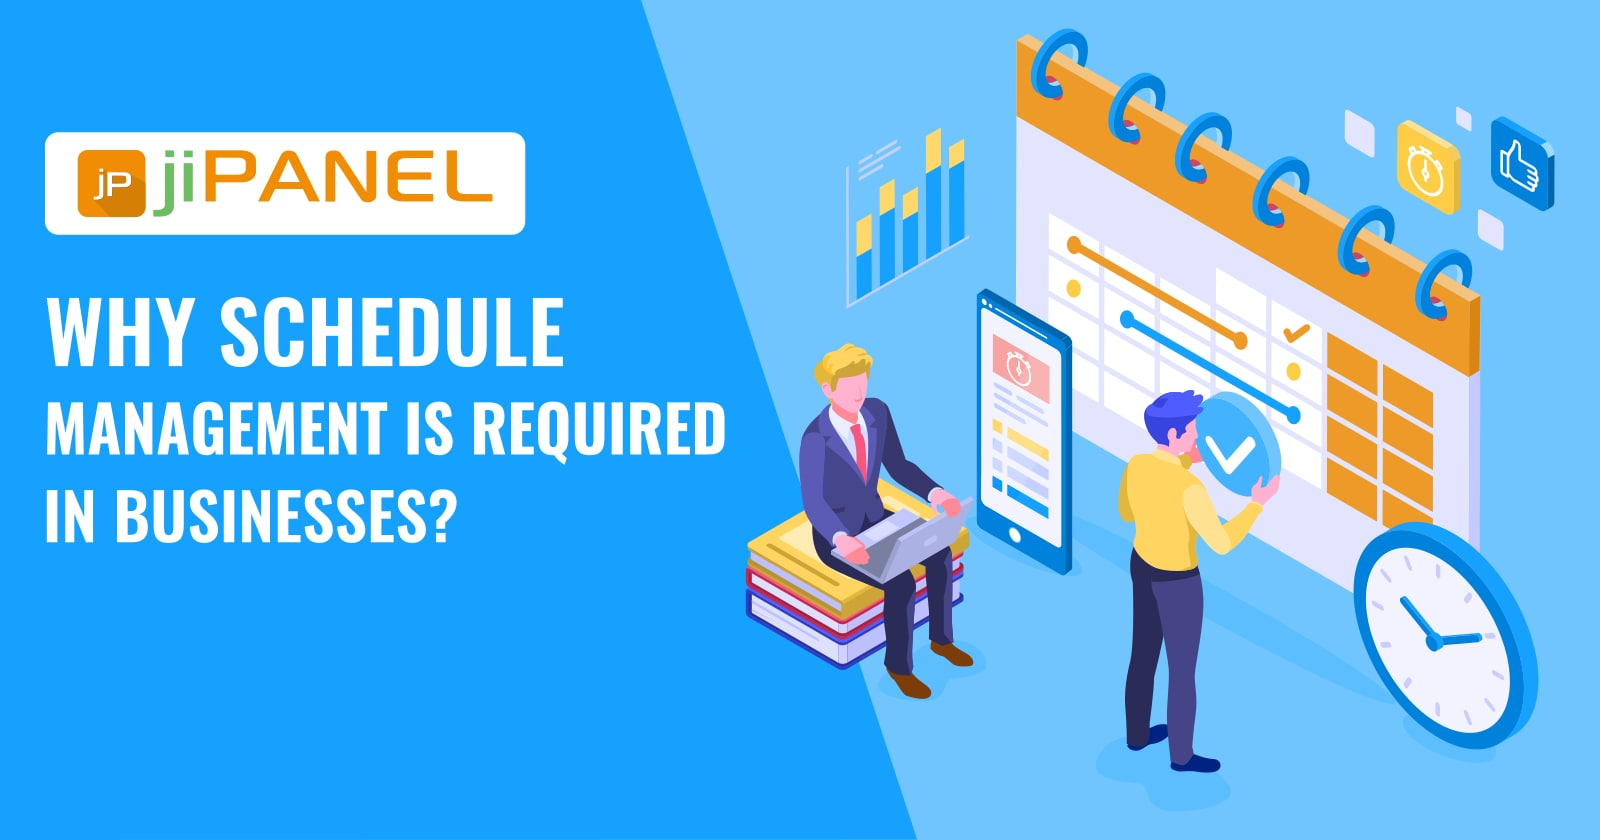 Why Schedule Management Is Required In Businesses?